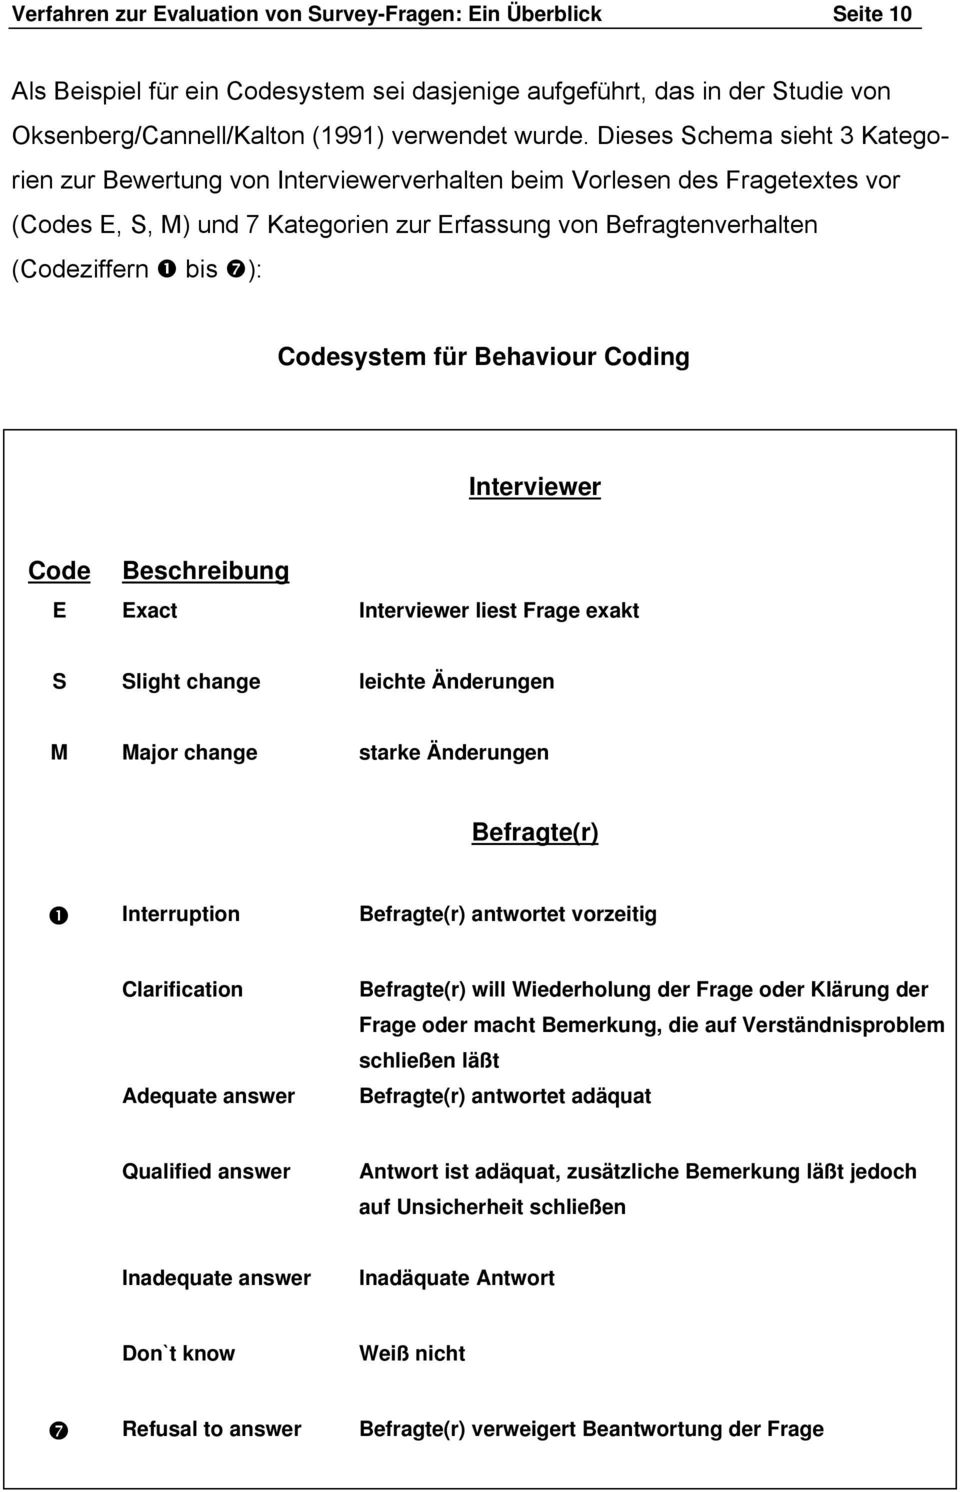 Codesystem für Behaviour Coding Interviewer Code Beschreibung E Exact Interviewer liest Frage exakt S Slight change leichte Änderungen M Major change starke Änderungen Befragte(r) ❶ Interruption